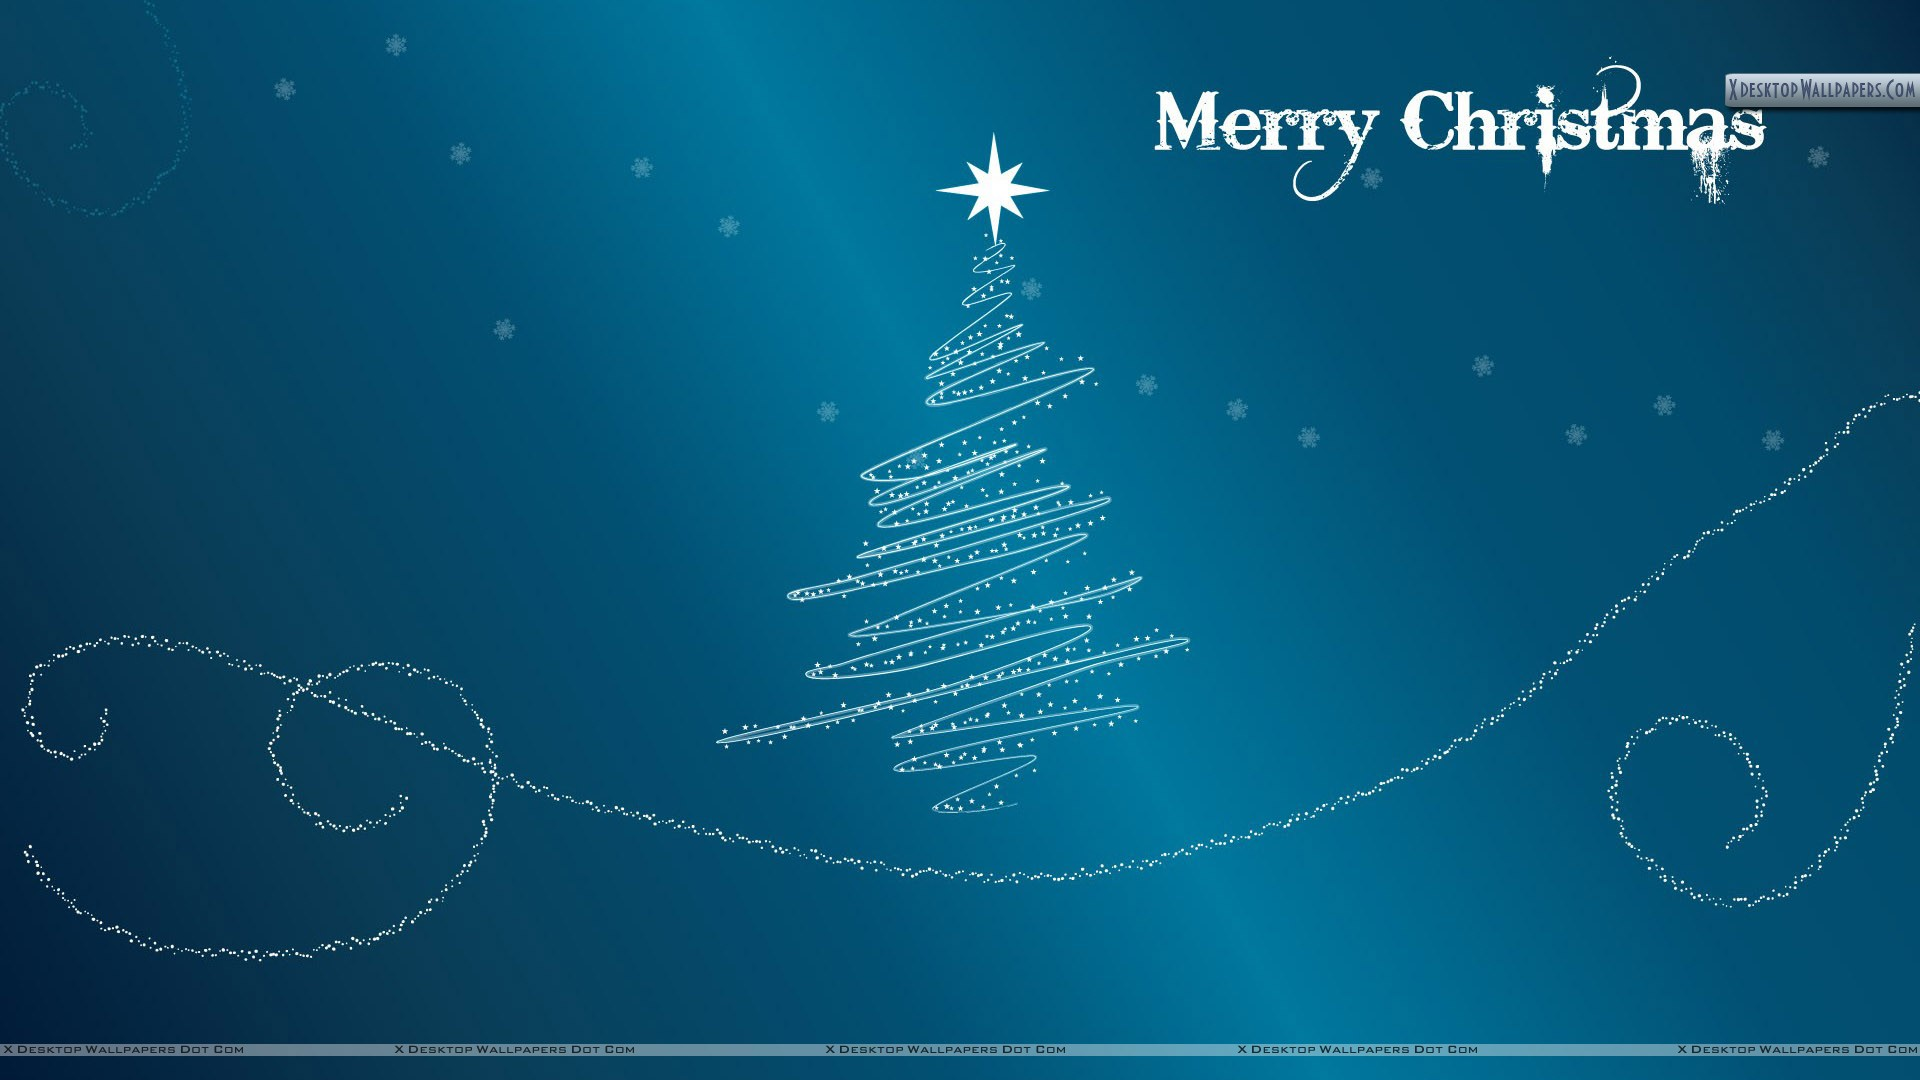 Merry Christmas With Blue Background Wallpaper